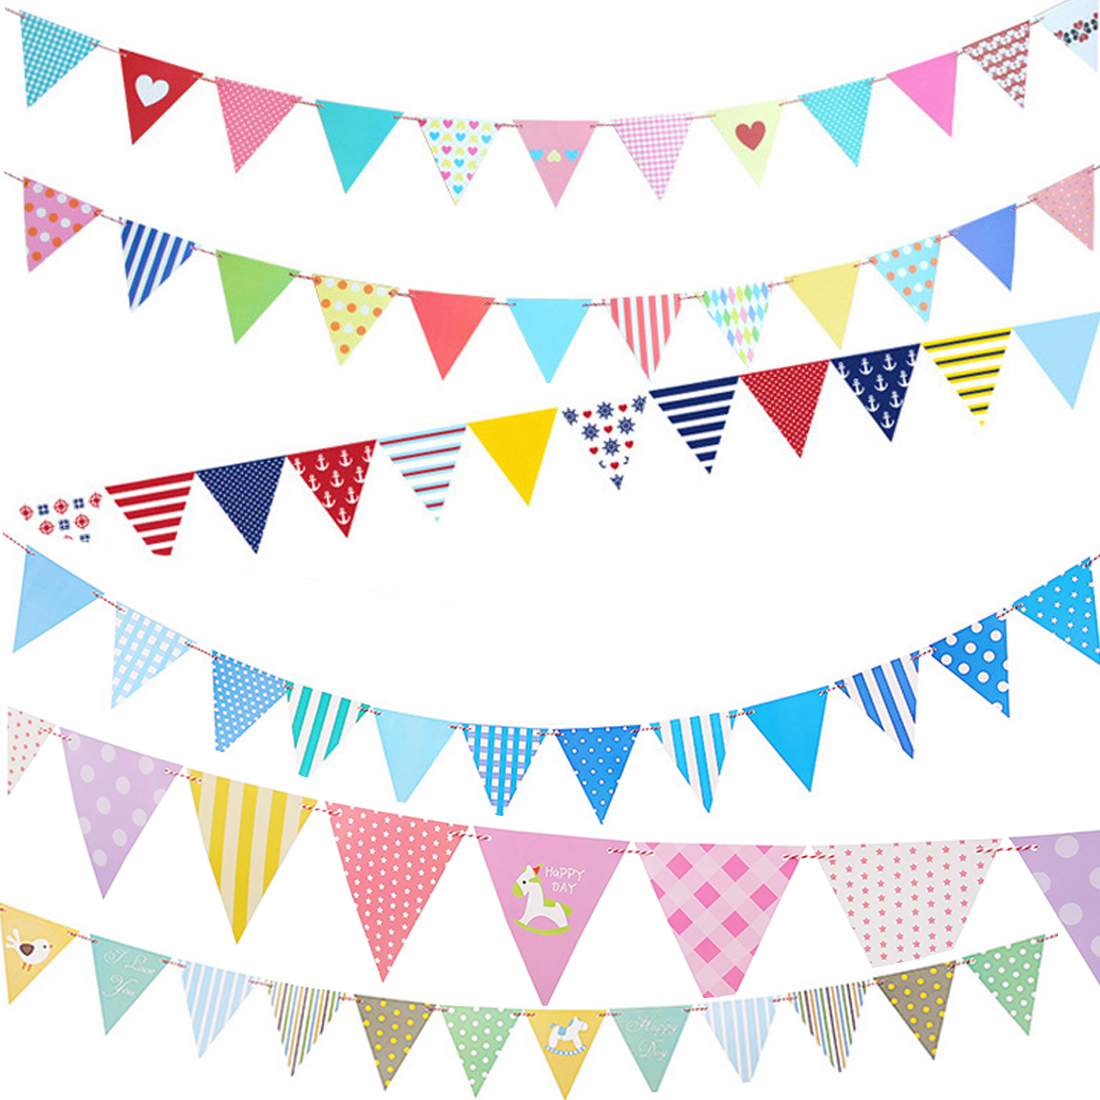 Sale 1pc DIY Paper Flags Garland Floral Bunting Banners Kids Birthday Wedding Party Decoration Supplies Childs Room Banner